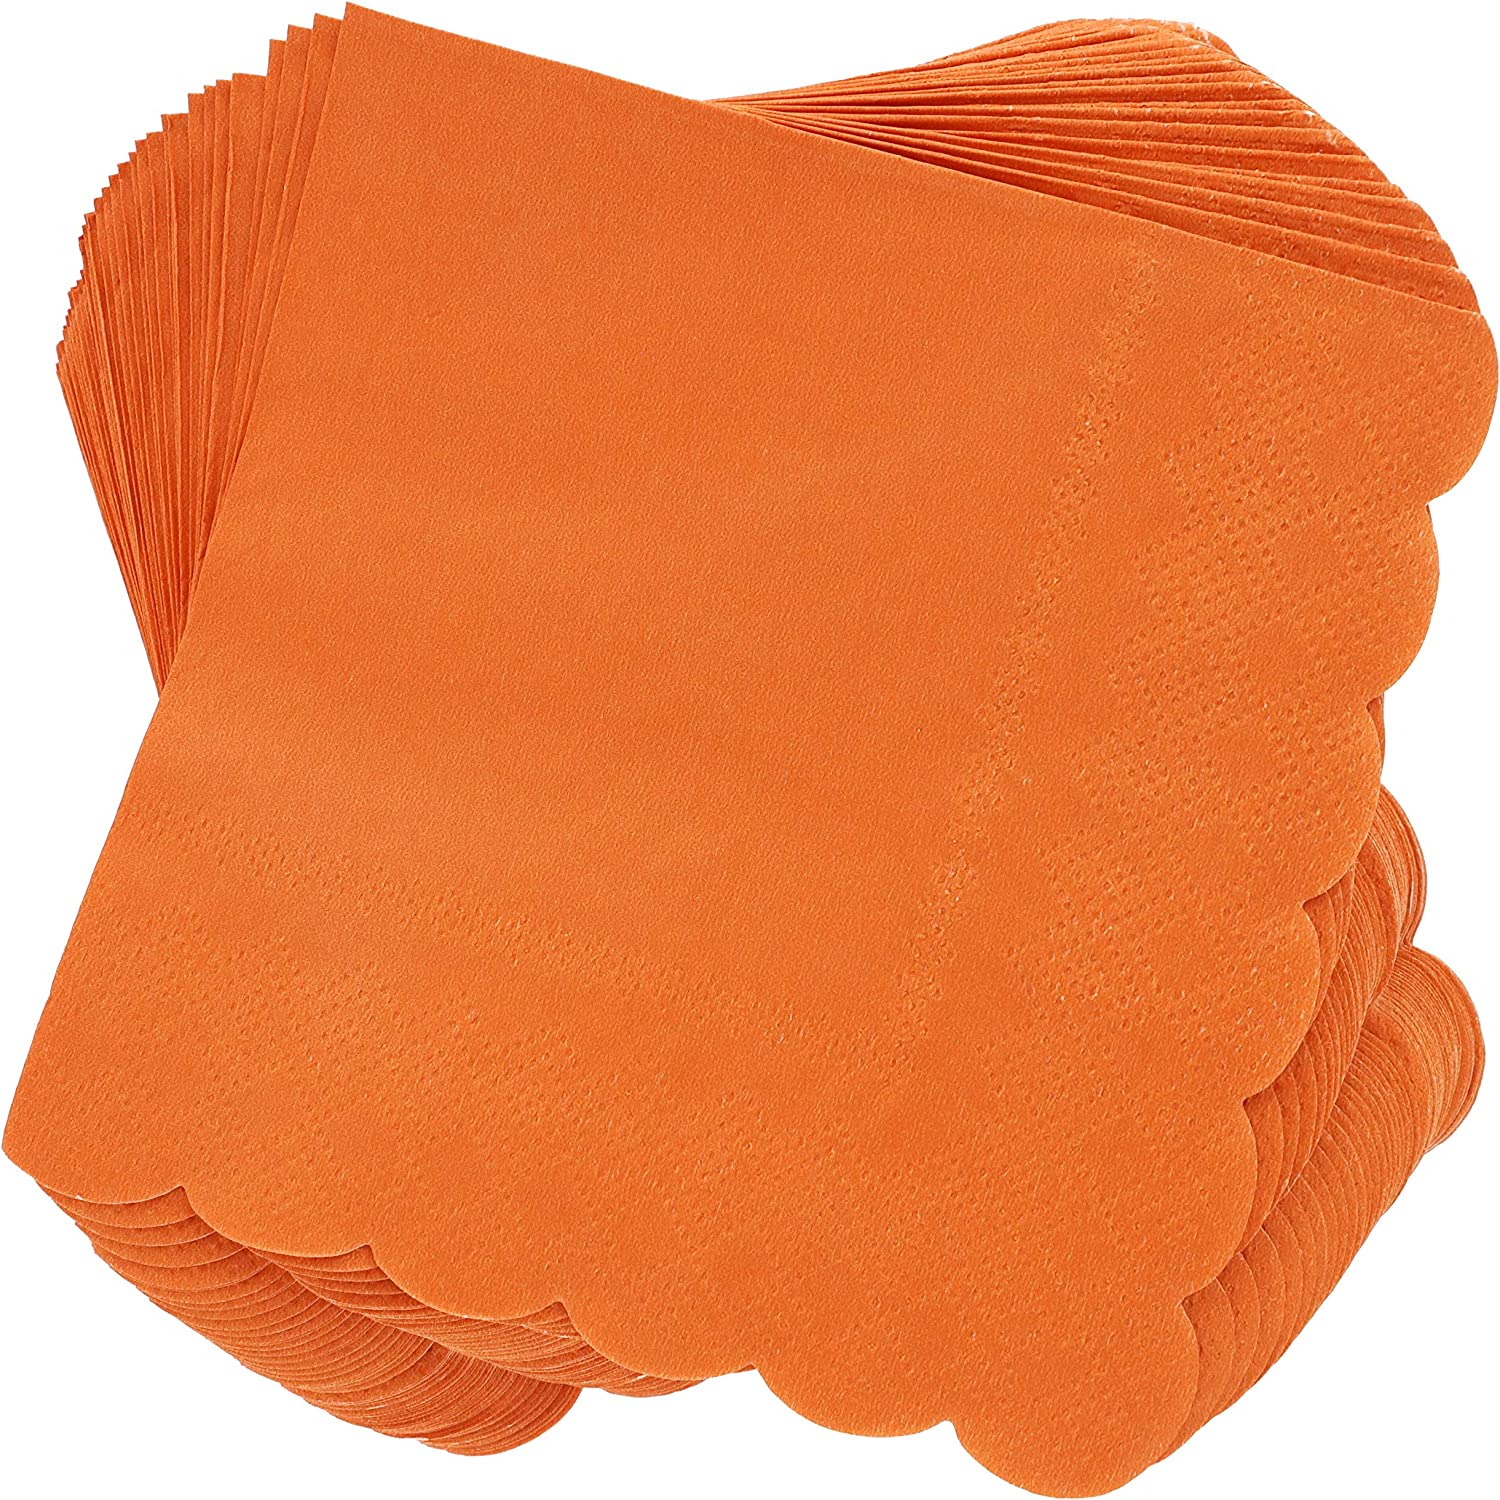 Scalloped Edged Cocktail Napkins (5 x 5 In, Orange, 100-Pack)